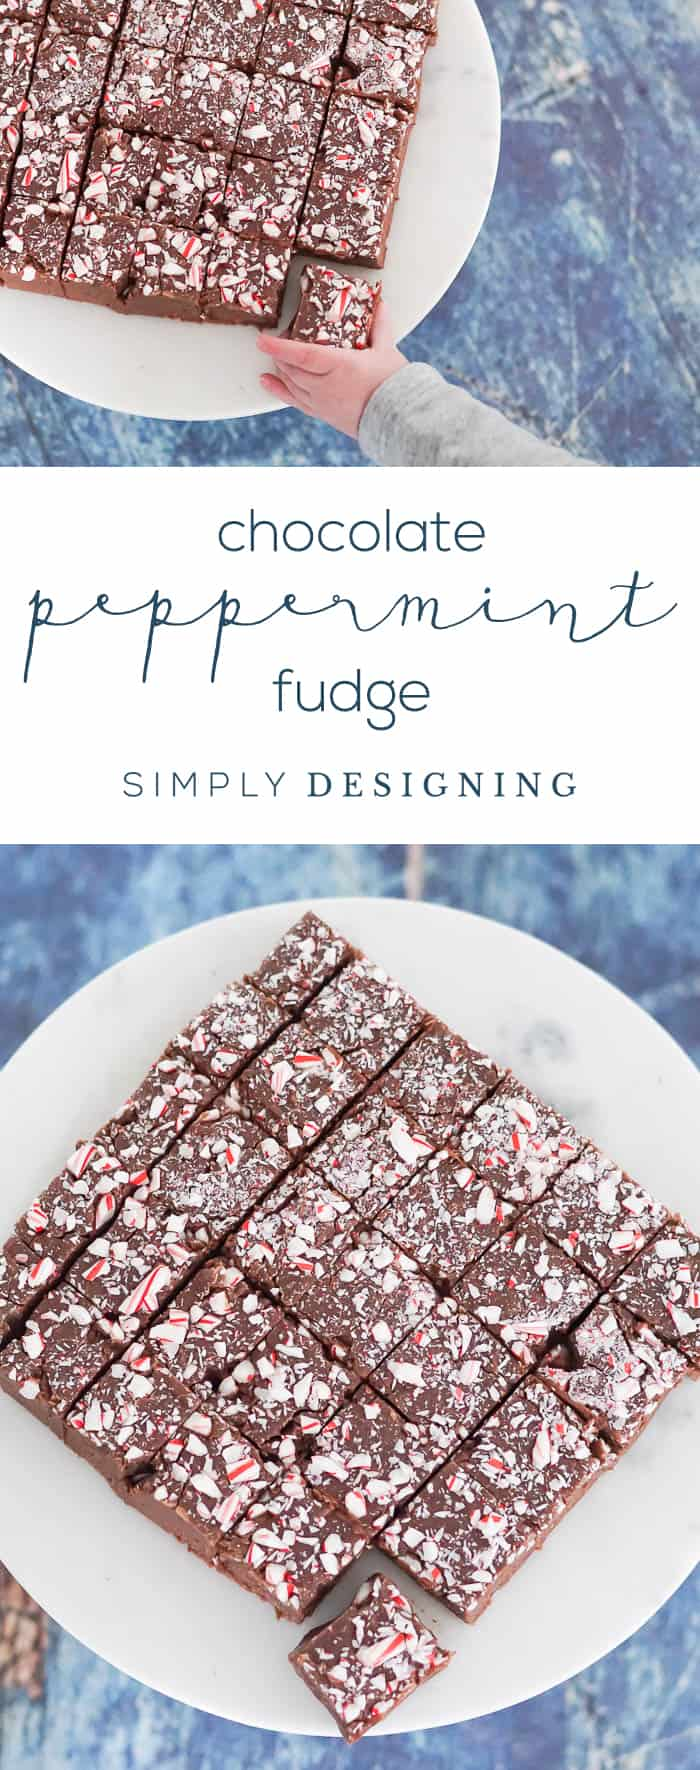 Chocolate Peppermint Fudge Recipe - the BEST chocolate fudge recipe with a hint of peppermint to take this to a whole new level of delicious